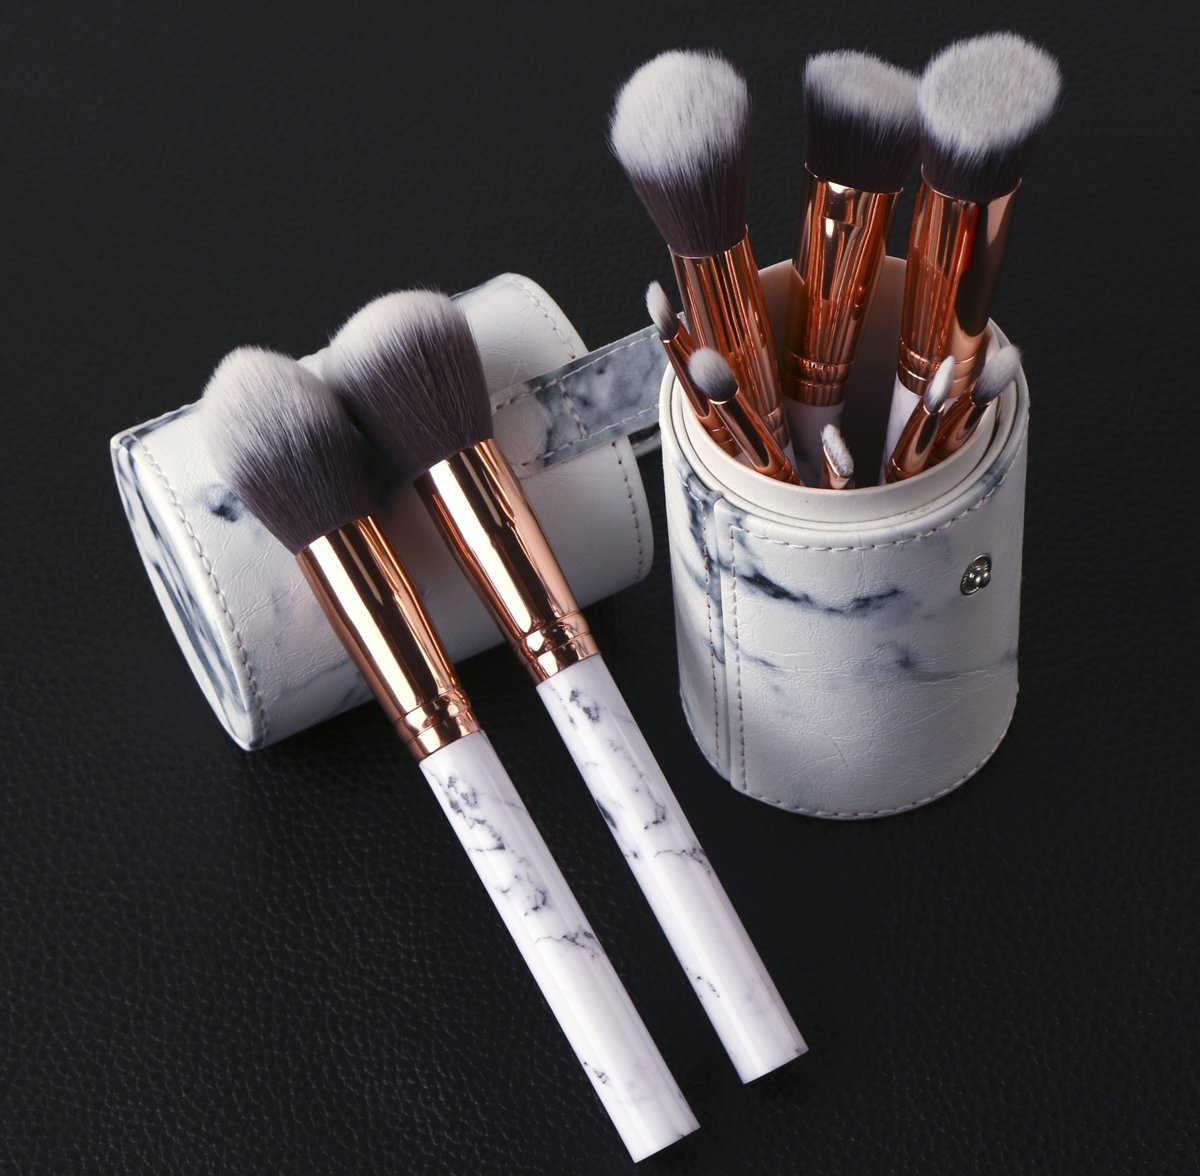 10 – delige professionele make up set | Make up kwasten | Make up brush | opmaken | Geschenk Set